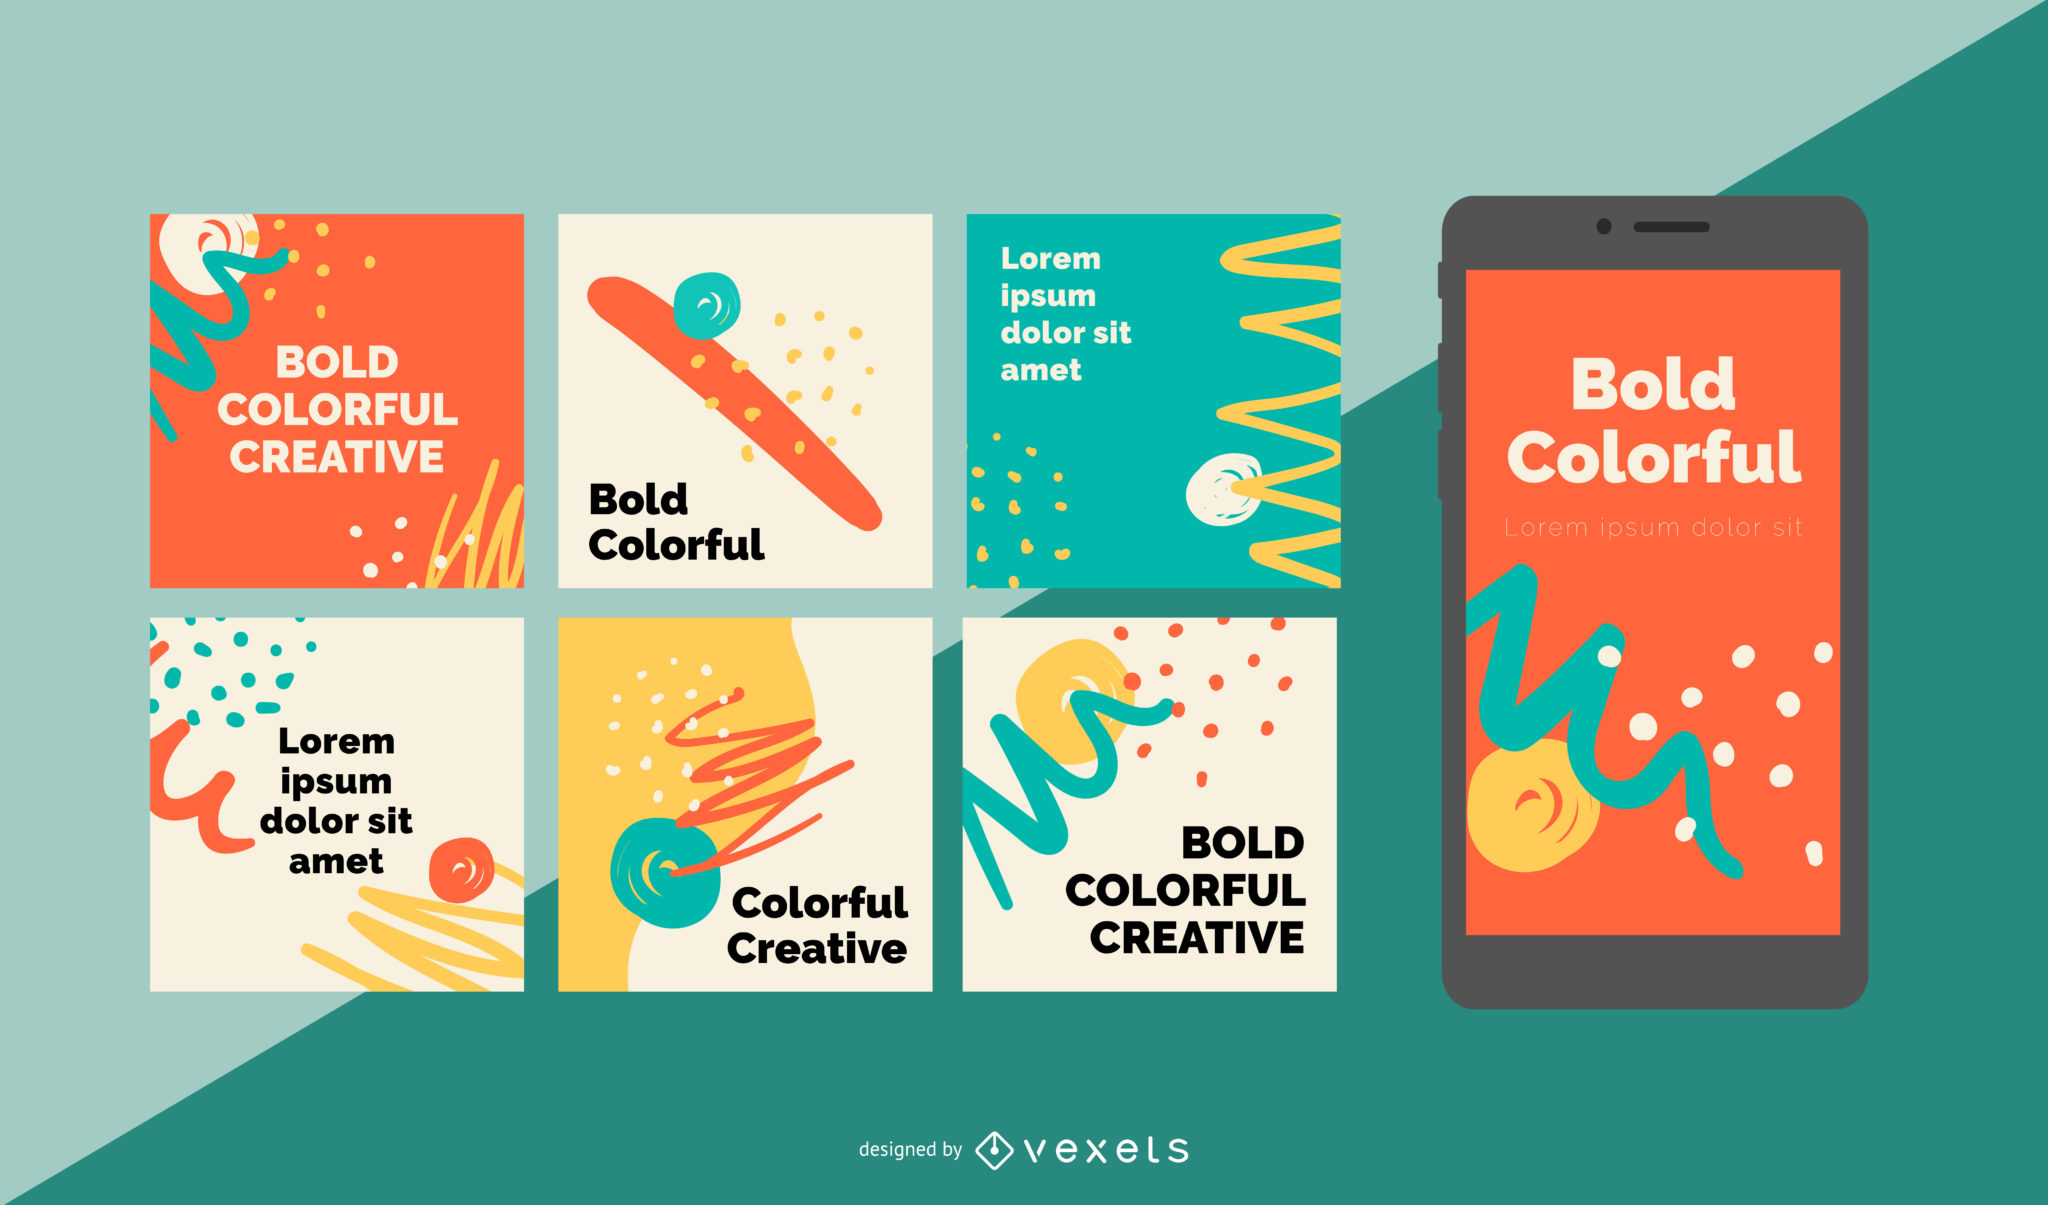 How To Create And Where To Find Graphic Design Templates